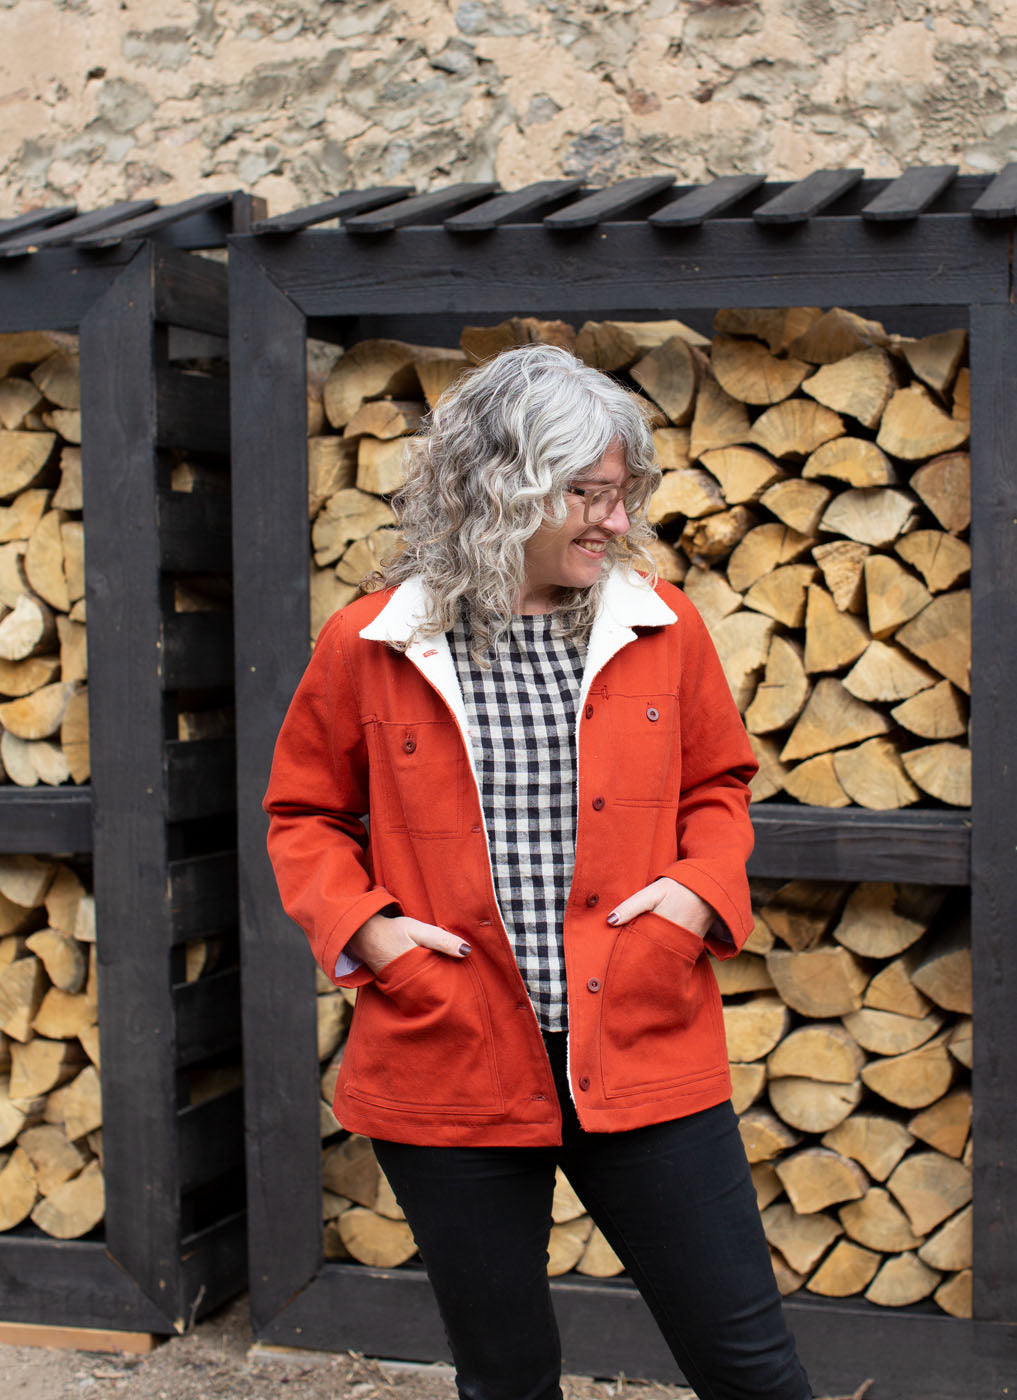 Jaime stands in front of a neatly stacked wall of firewood, wearing her Thayer Jacket in fire-orange twill unbuttoned. The jacket is lined with hemp/cotton sherpa.